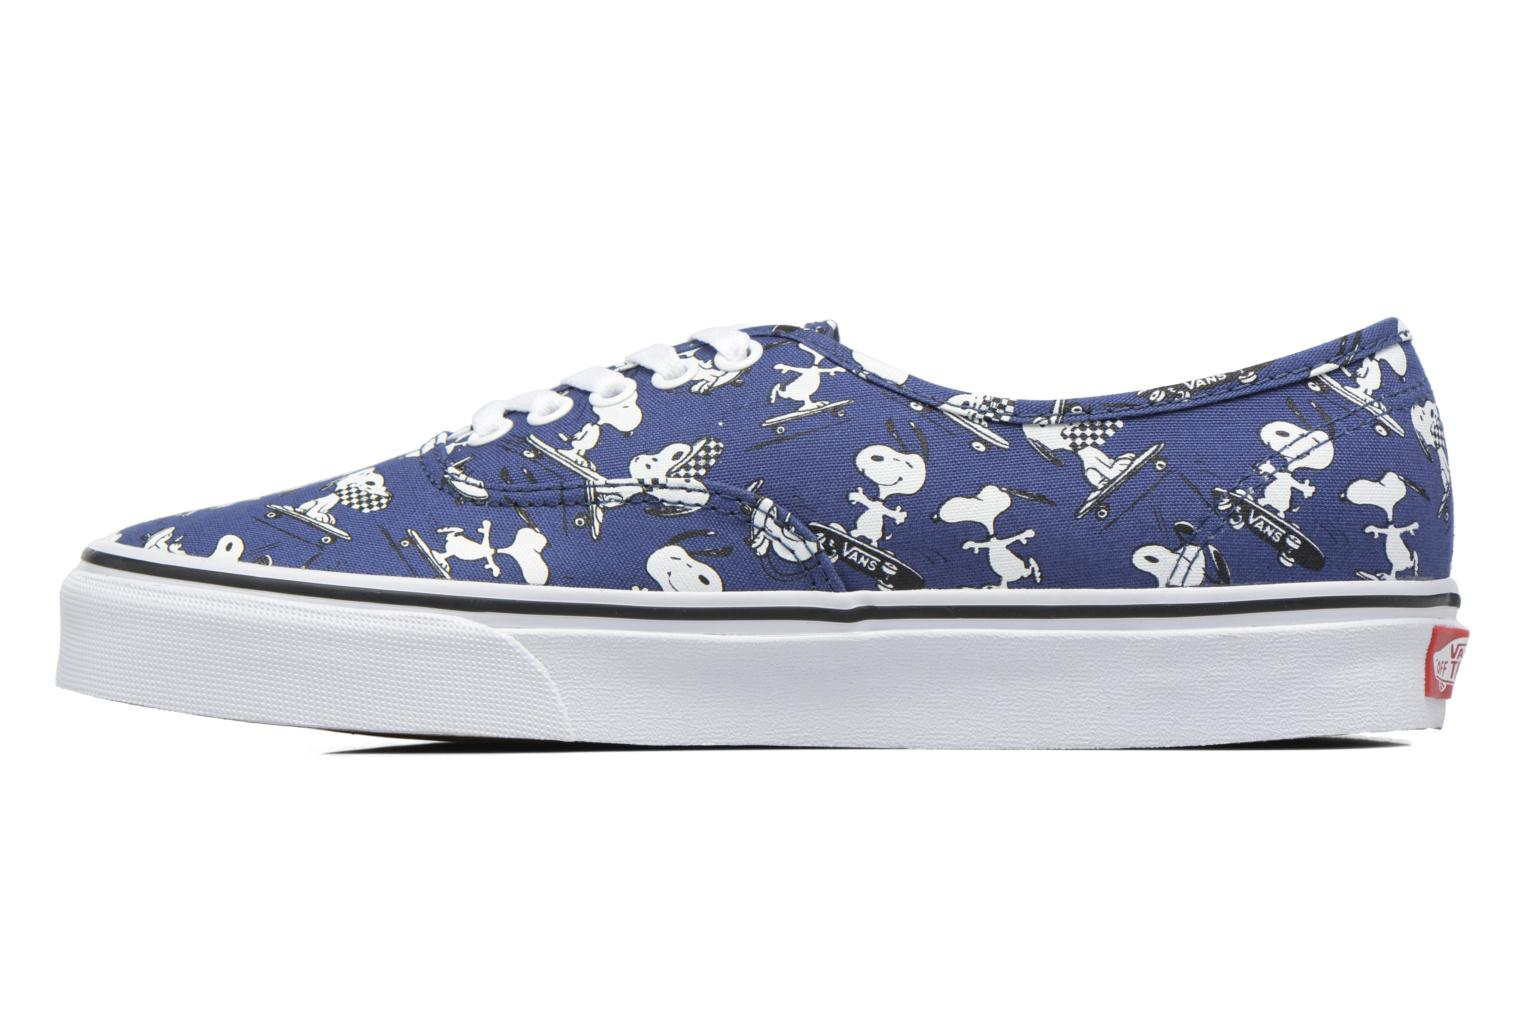 Authentic x Peanuts Snoopy/Skating